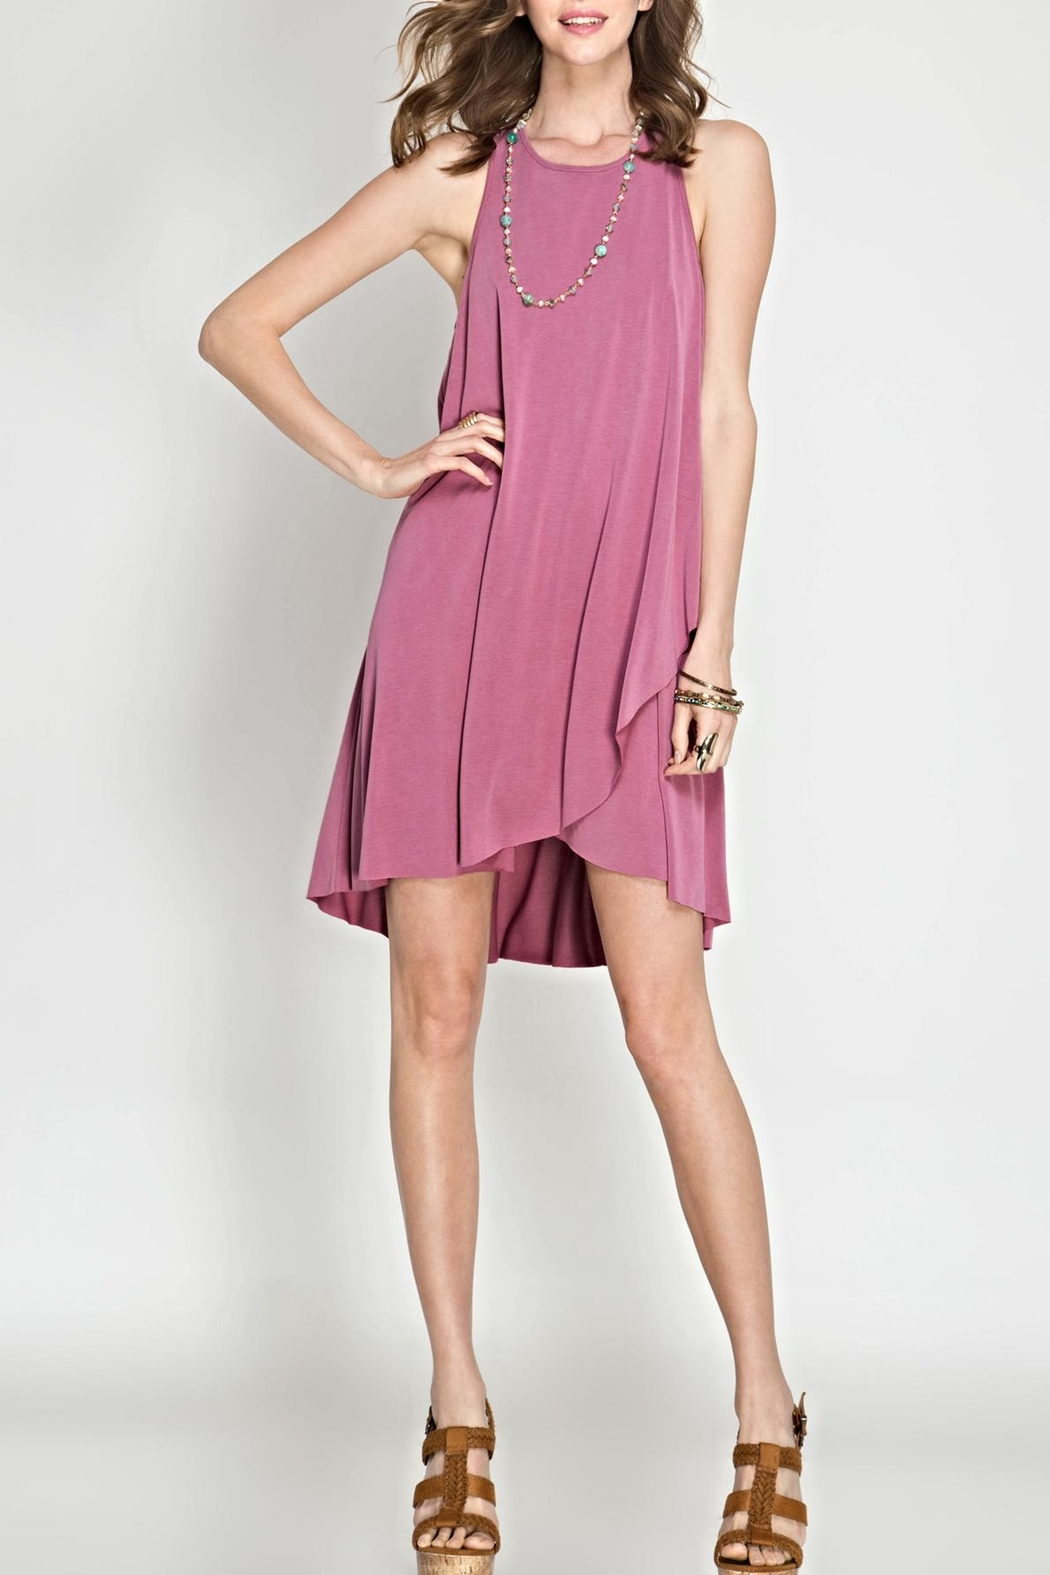 She + Sky Pink Sleeveless Shift Dress - Front Cropped Image